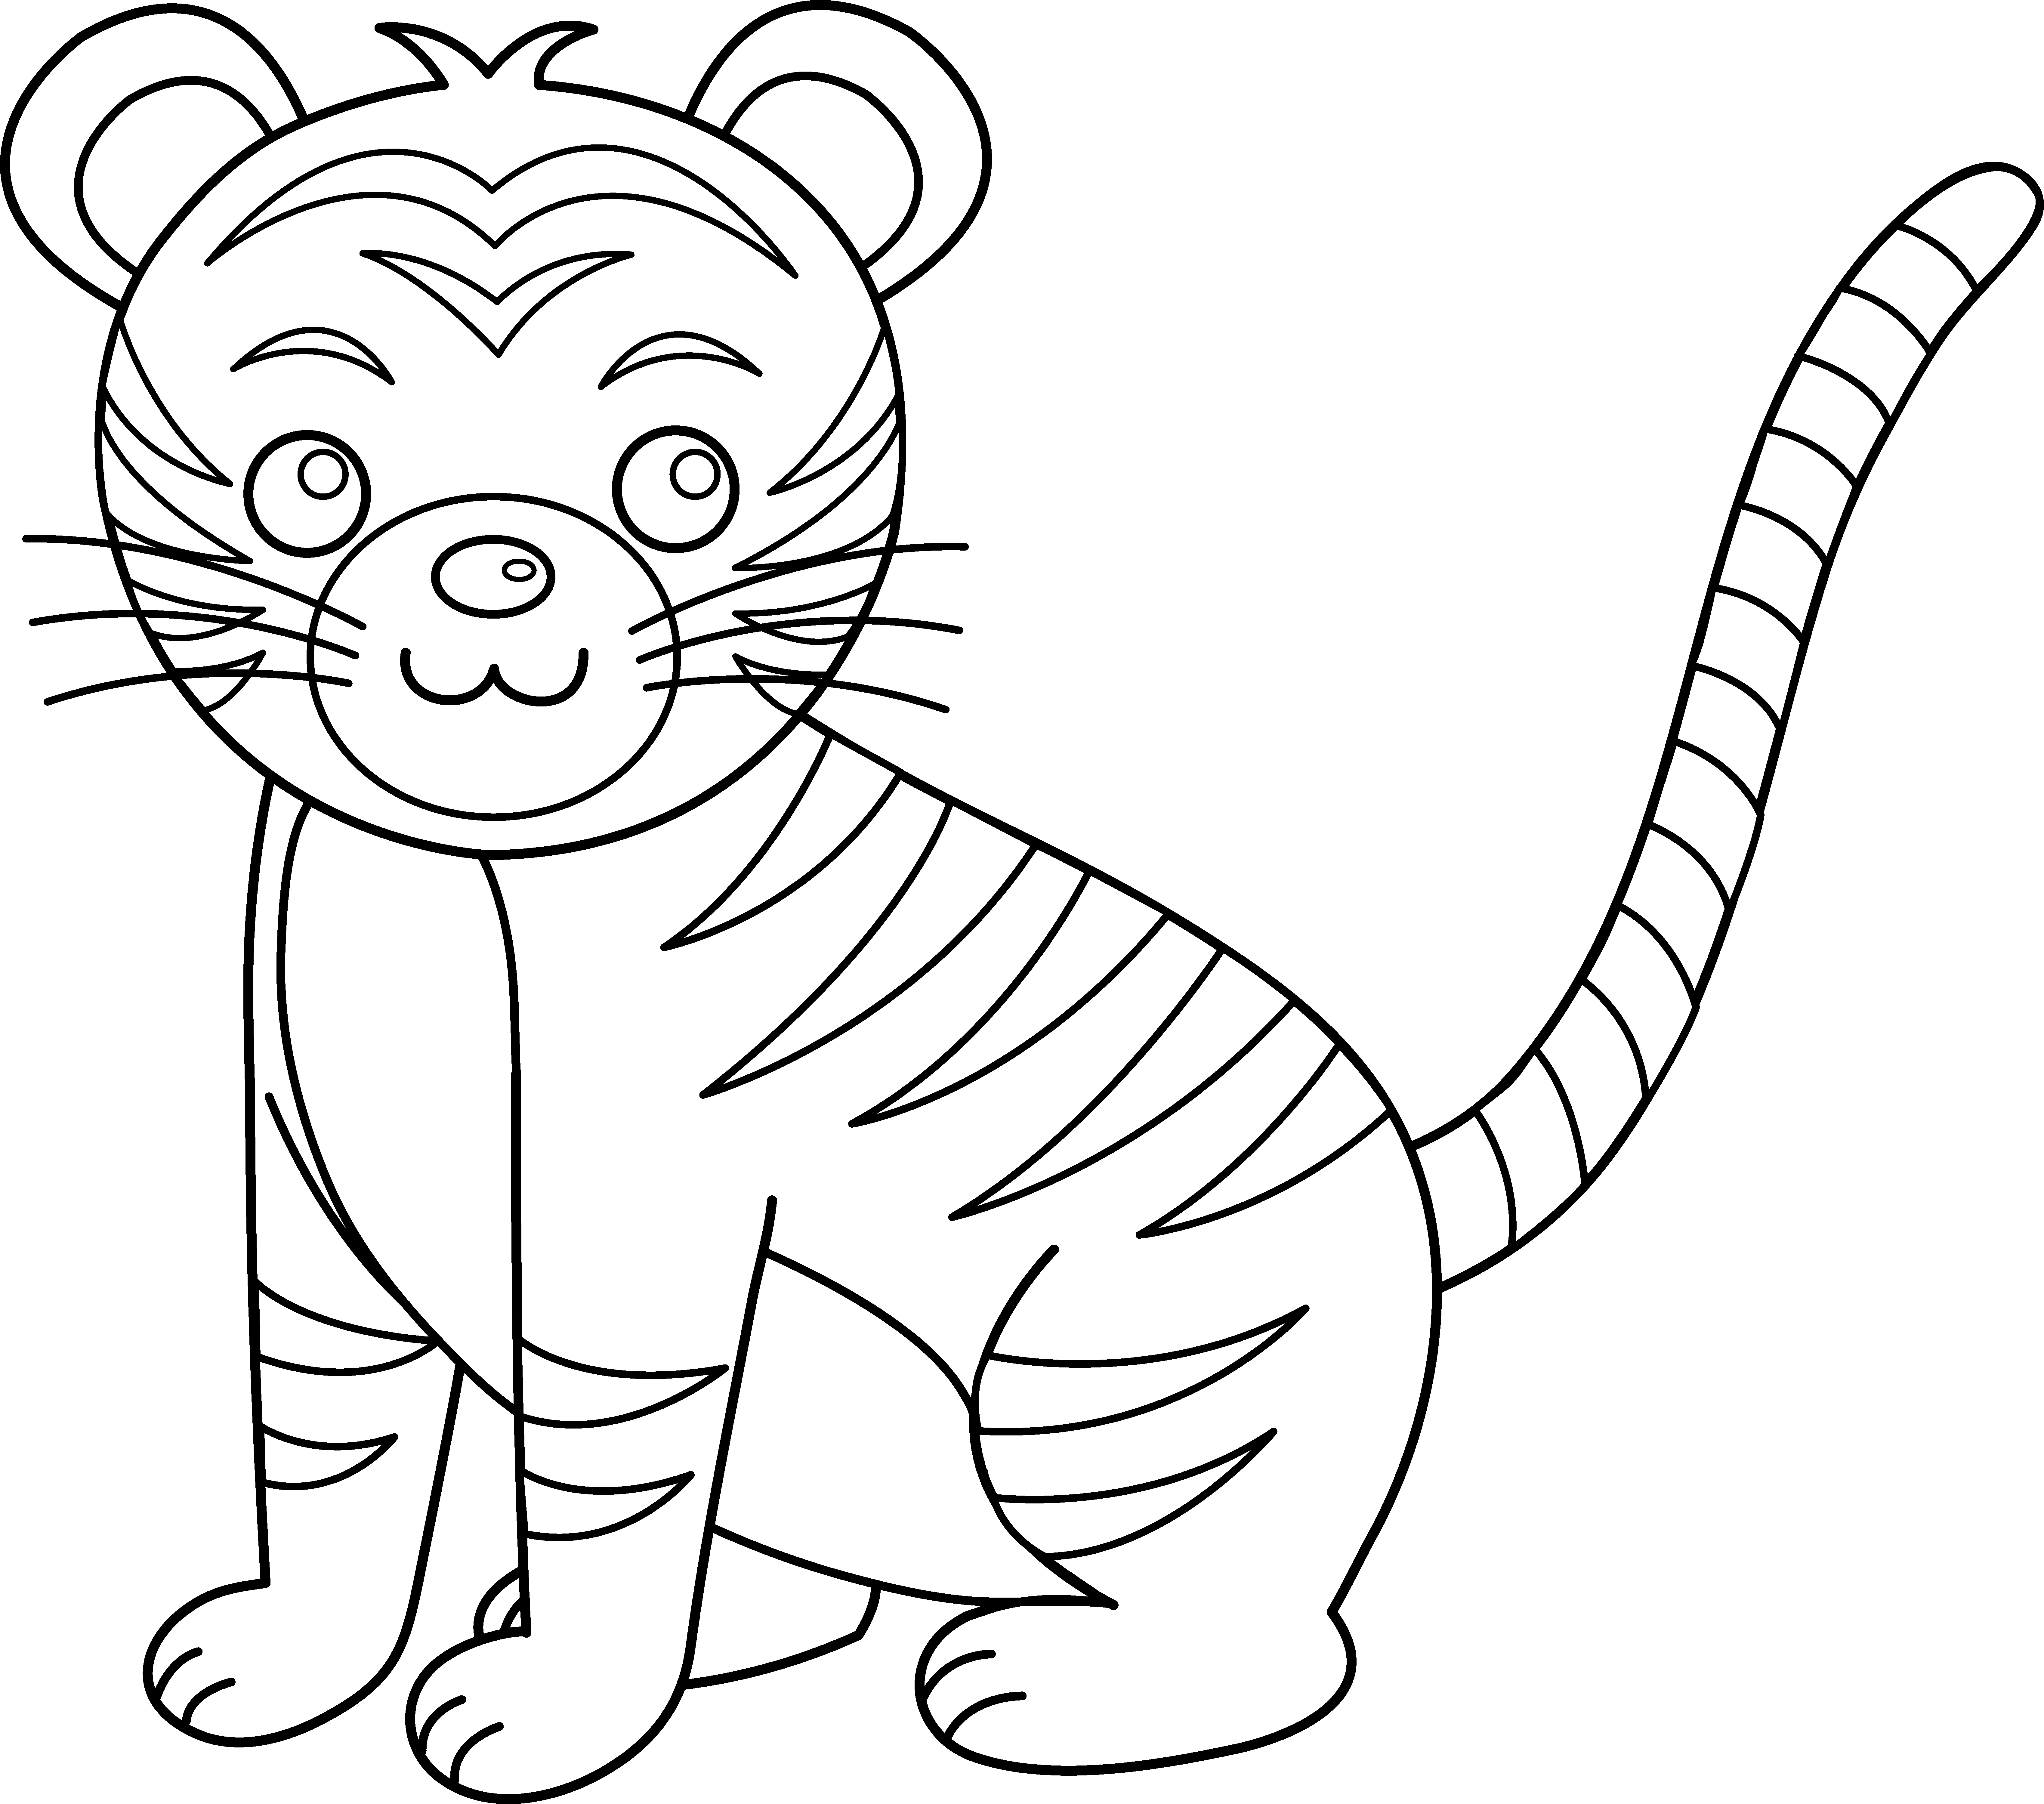 Drawing tigers coloring. Cute colorable tiger free